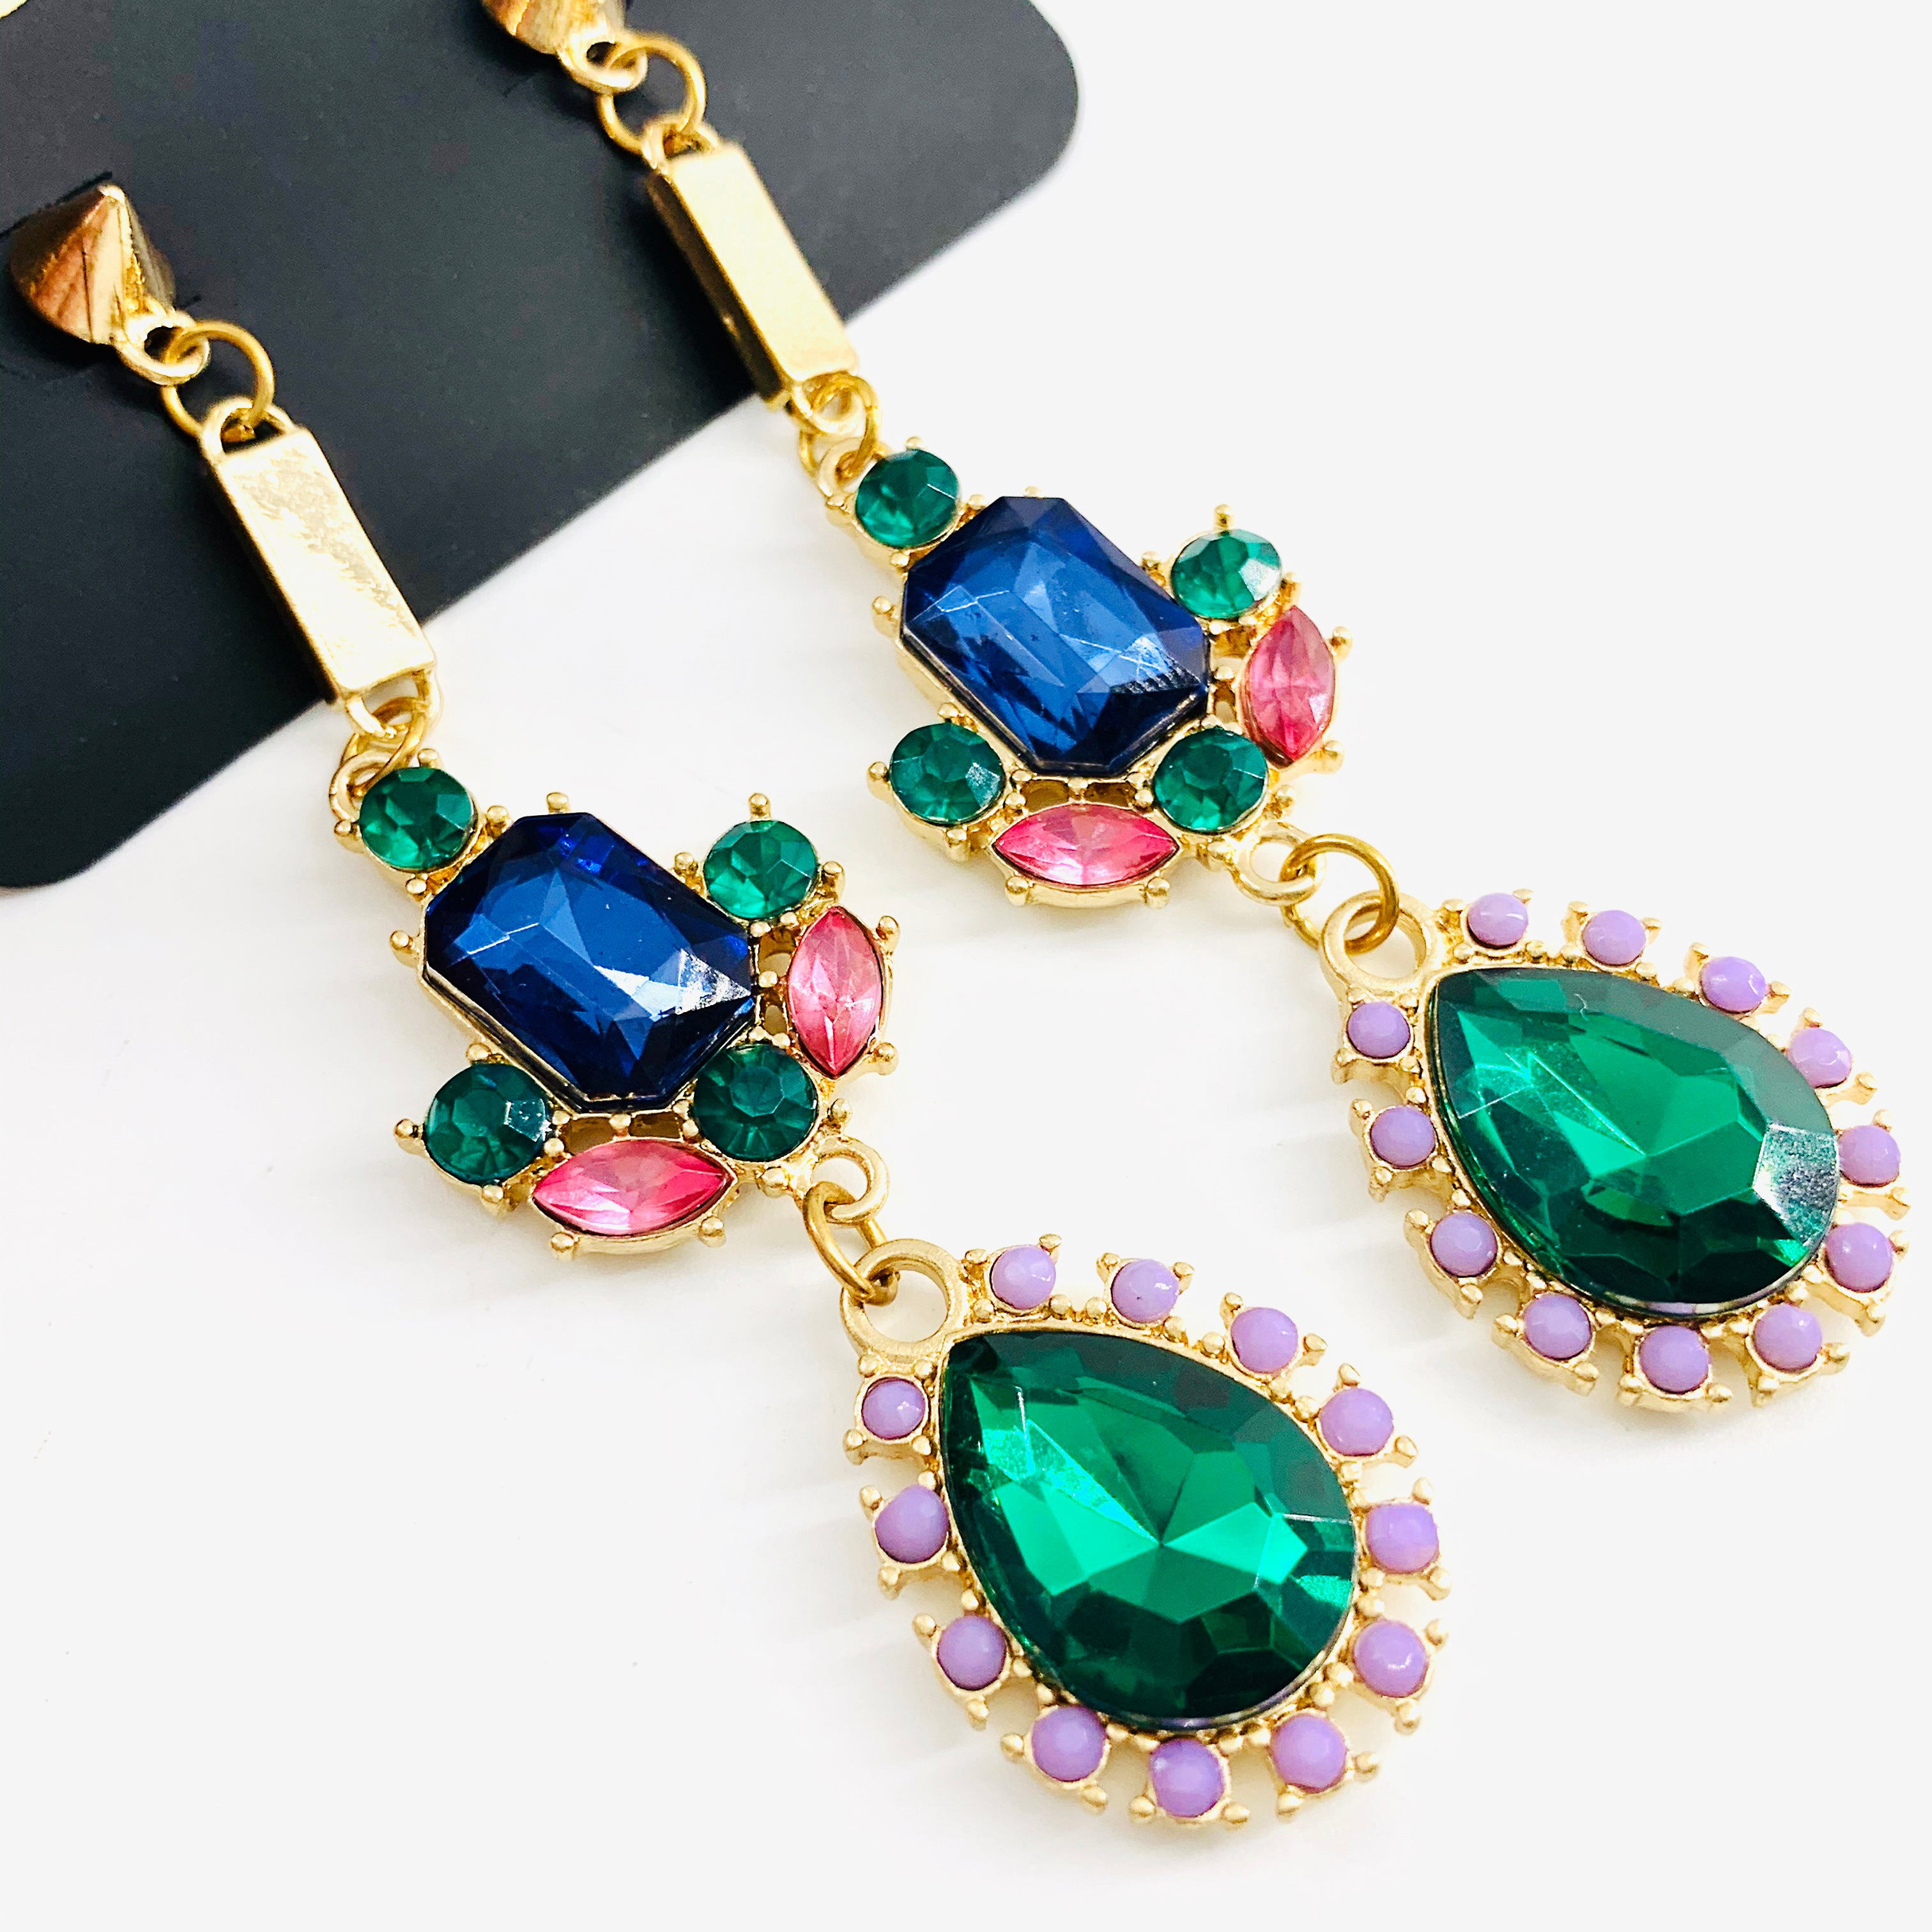 Earrings with emerald, blue, pink and lilac stones